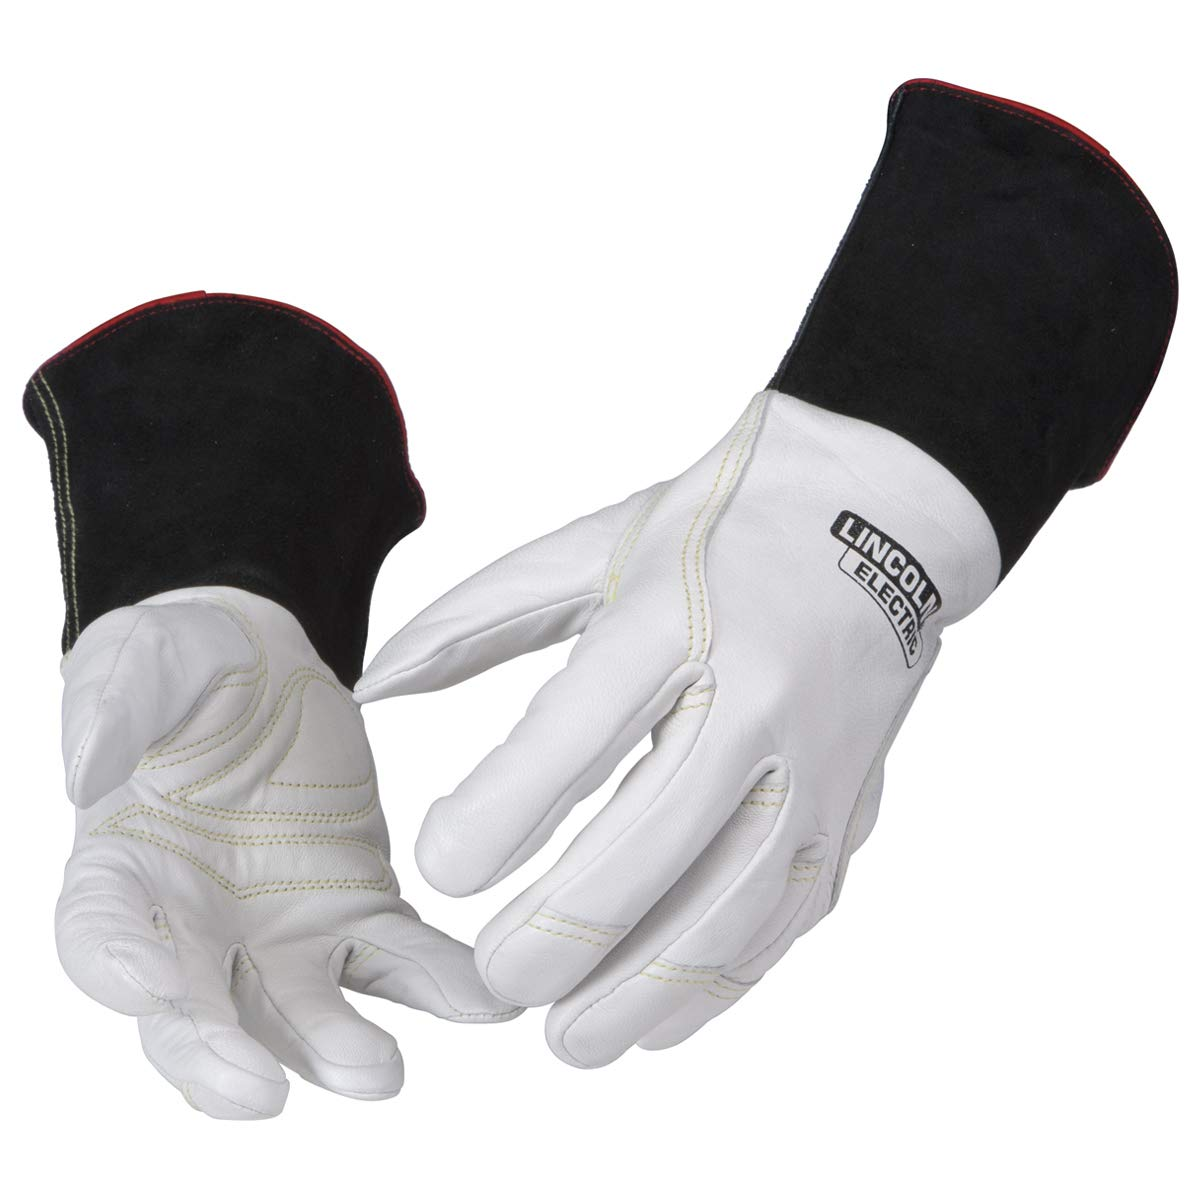 Lincoln Electric Premium TIG Welding Gloves | Top Grain Leather | High Dexterity | Medium | K2983-M by Lincoln Electric